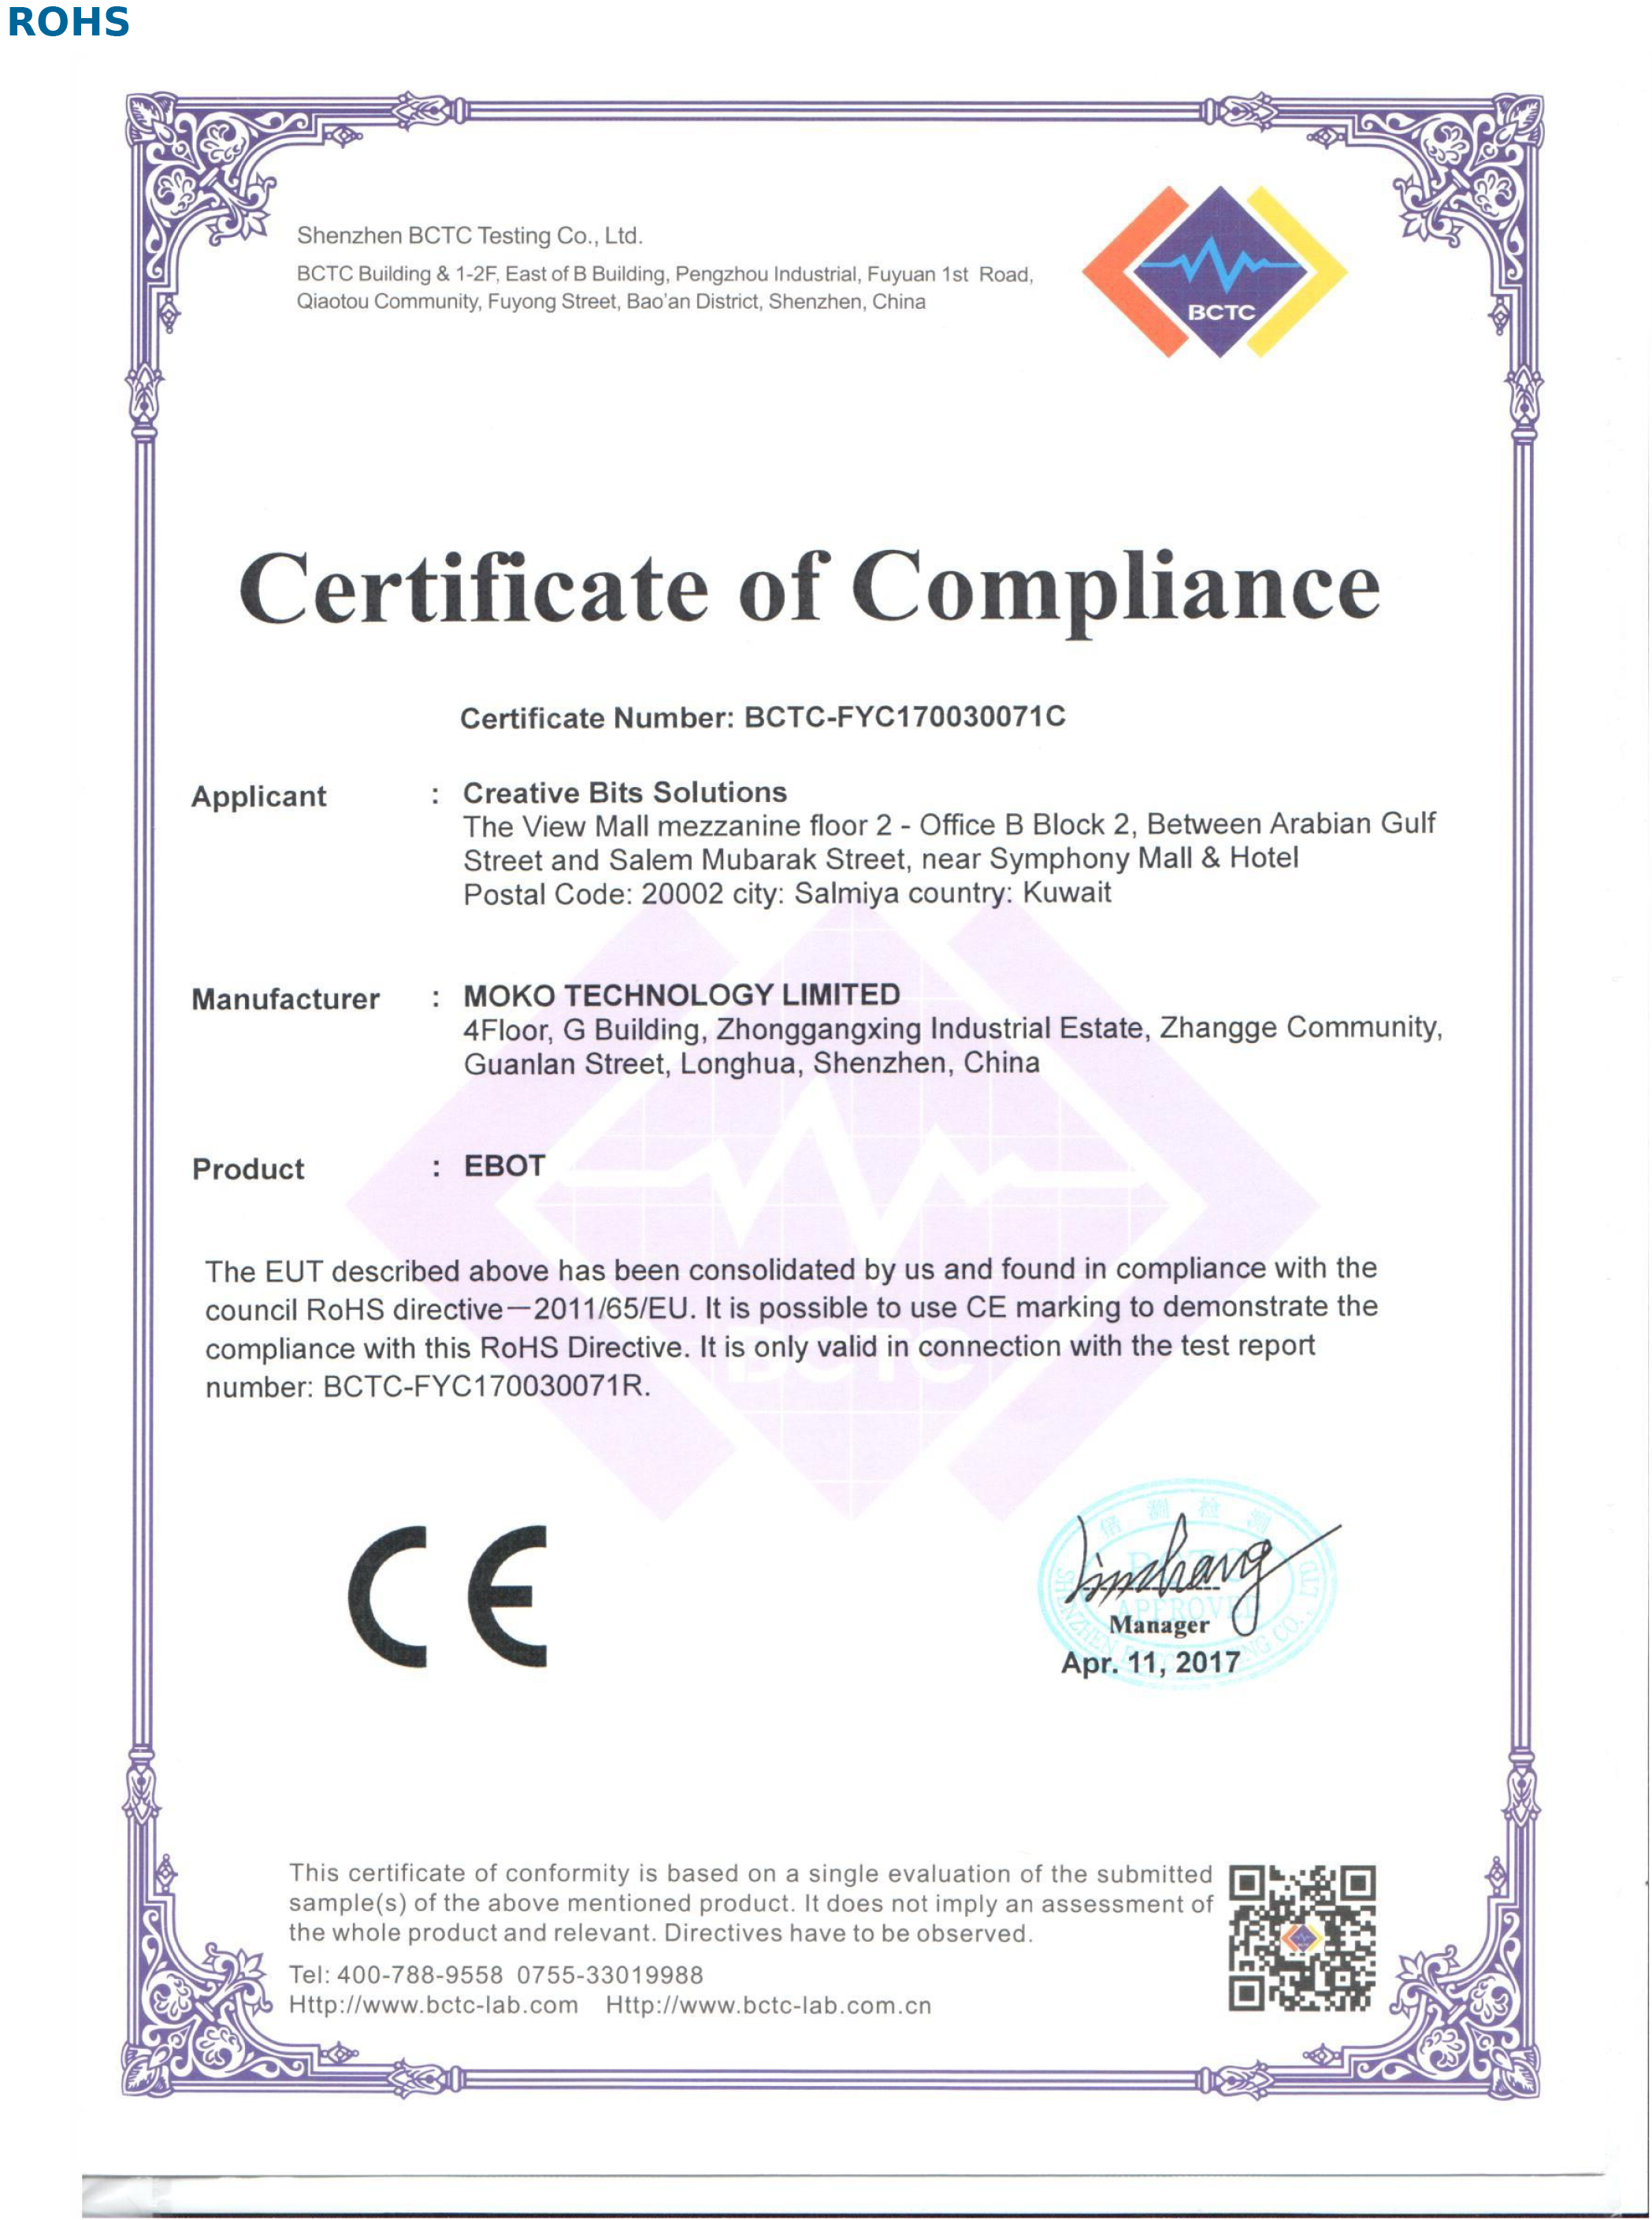 File:Certificate of Compliance 2.png.